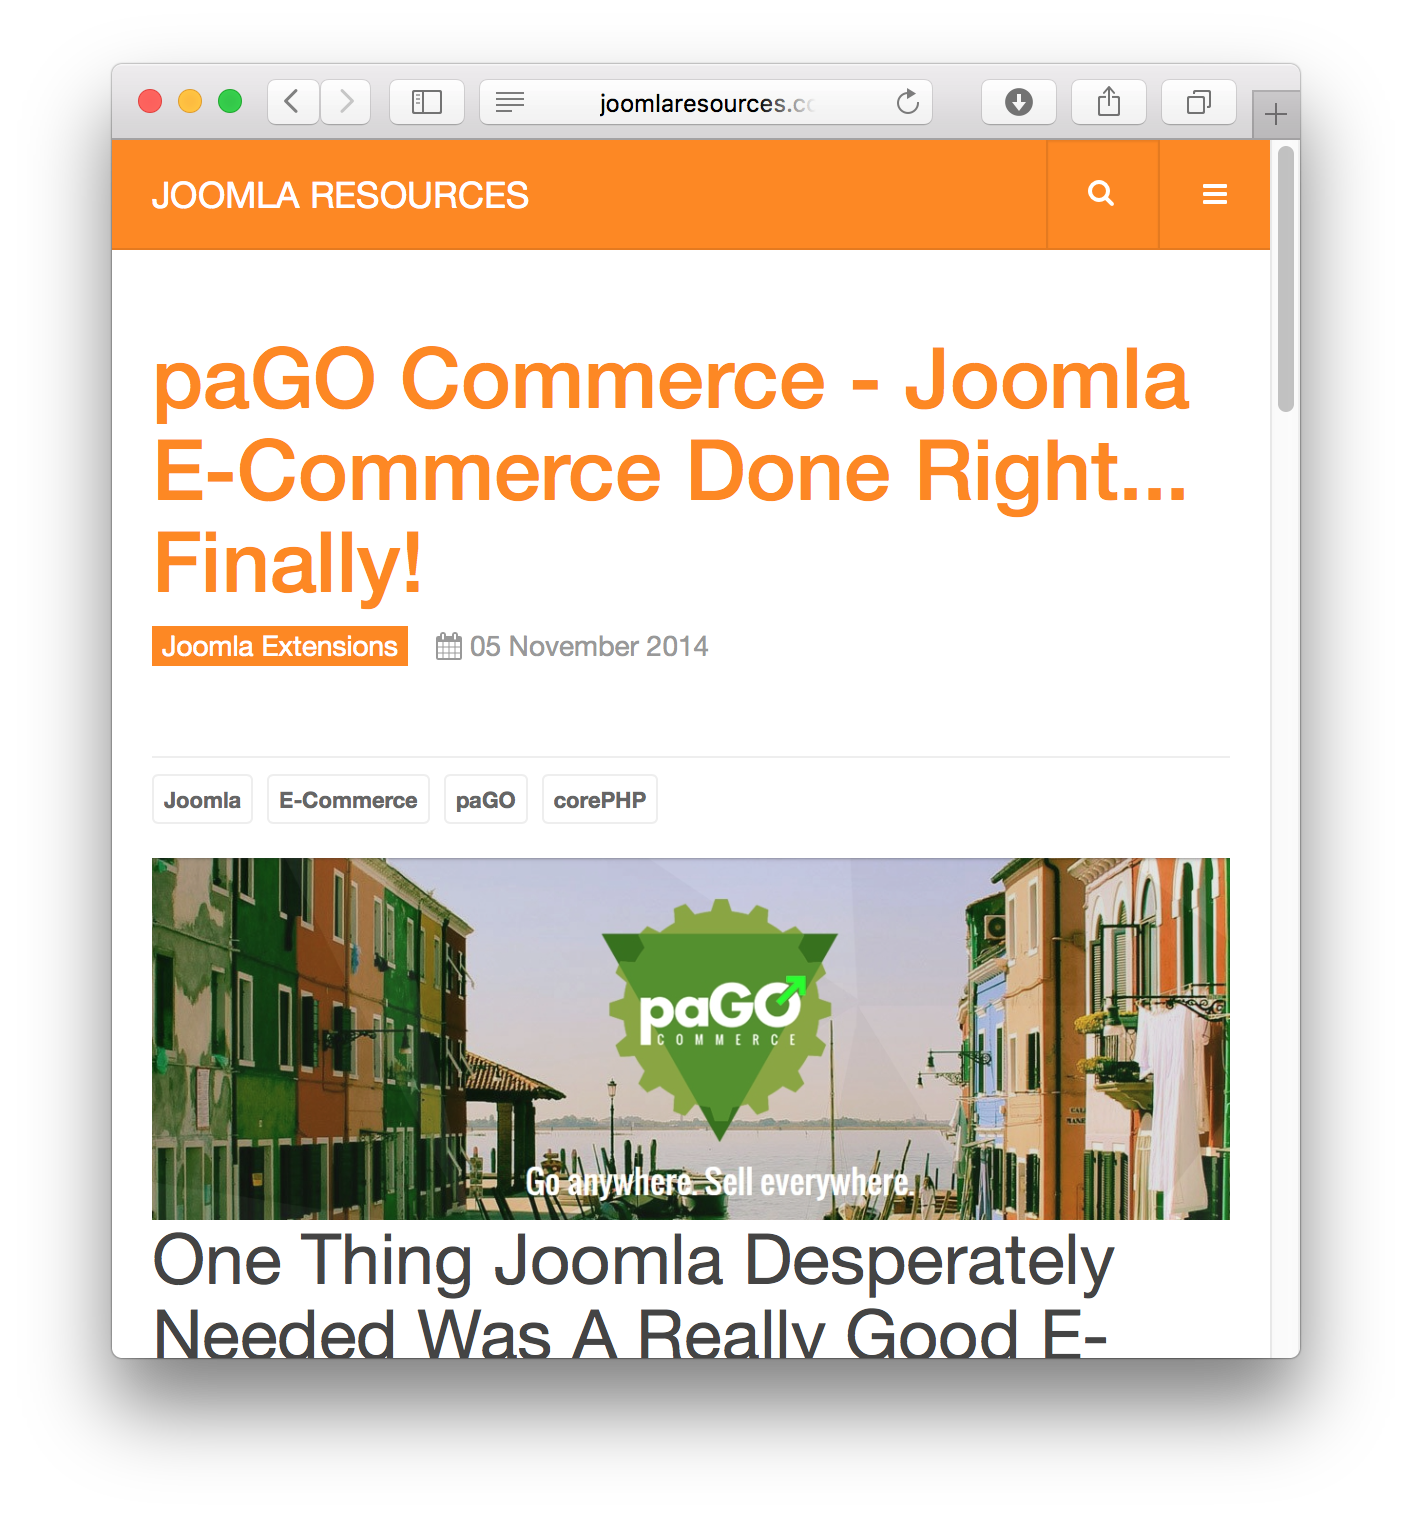 pago pago latin dating site Pago pago, american samoa write a message profile photos 0 comments 0 views: 193   joined on: november 13, 2017   id: 1331510537  dating wordpress theme.